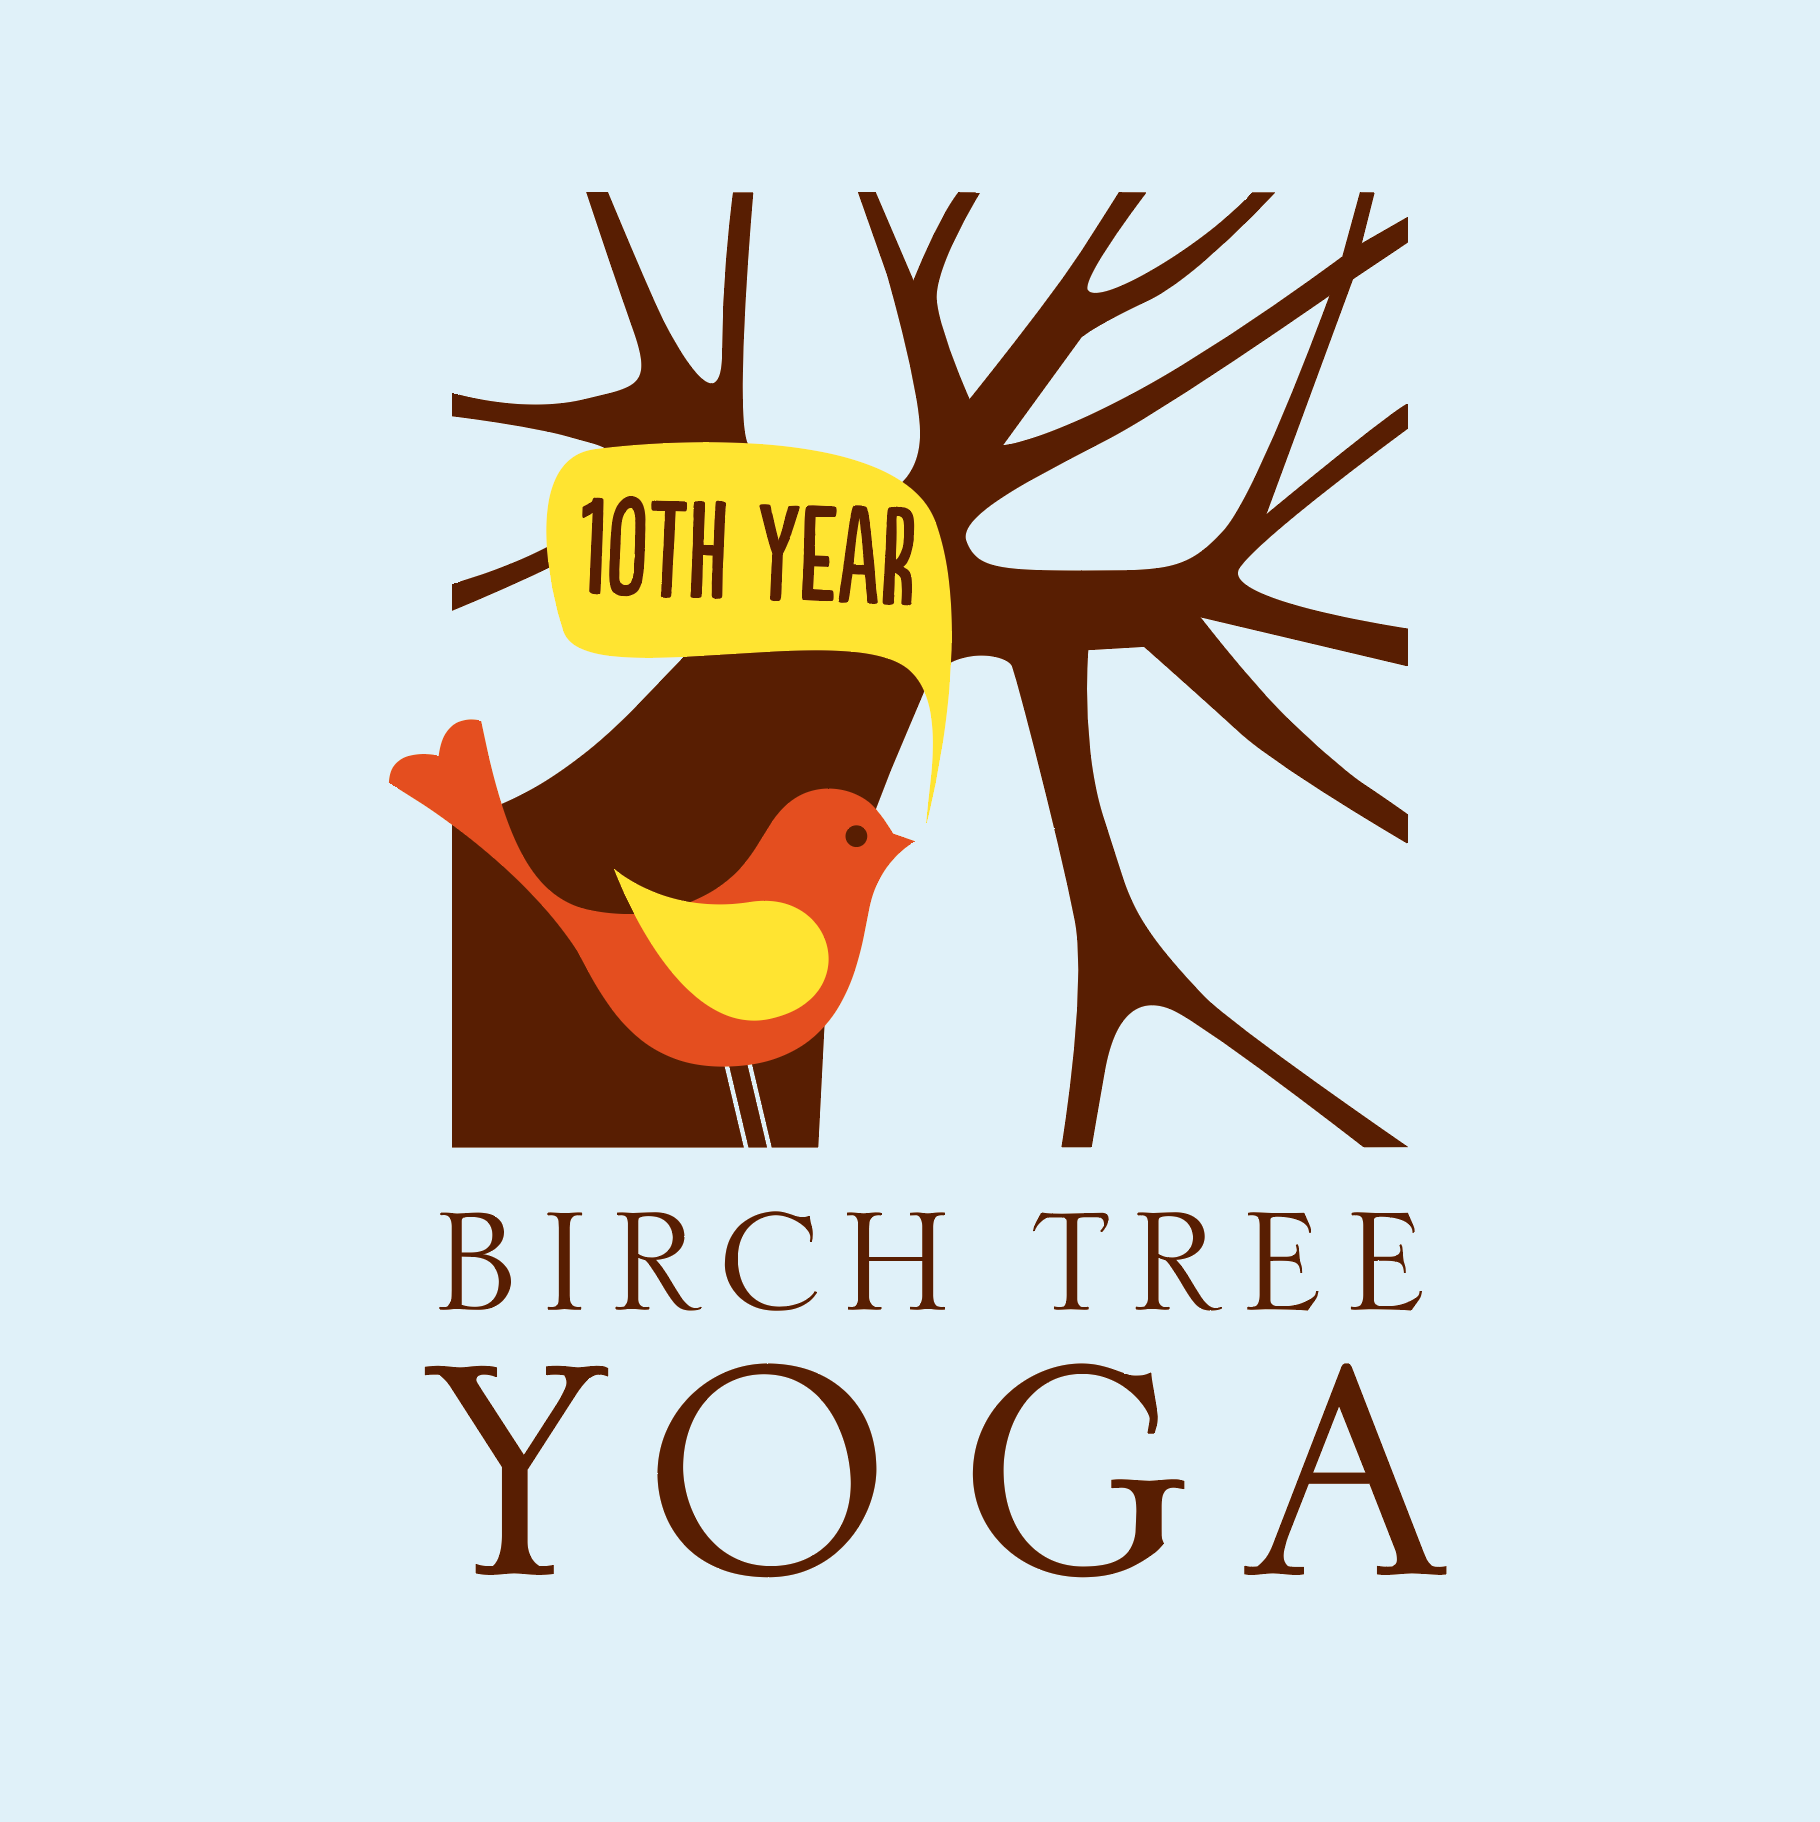 Birch Tree Yoga Studio